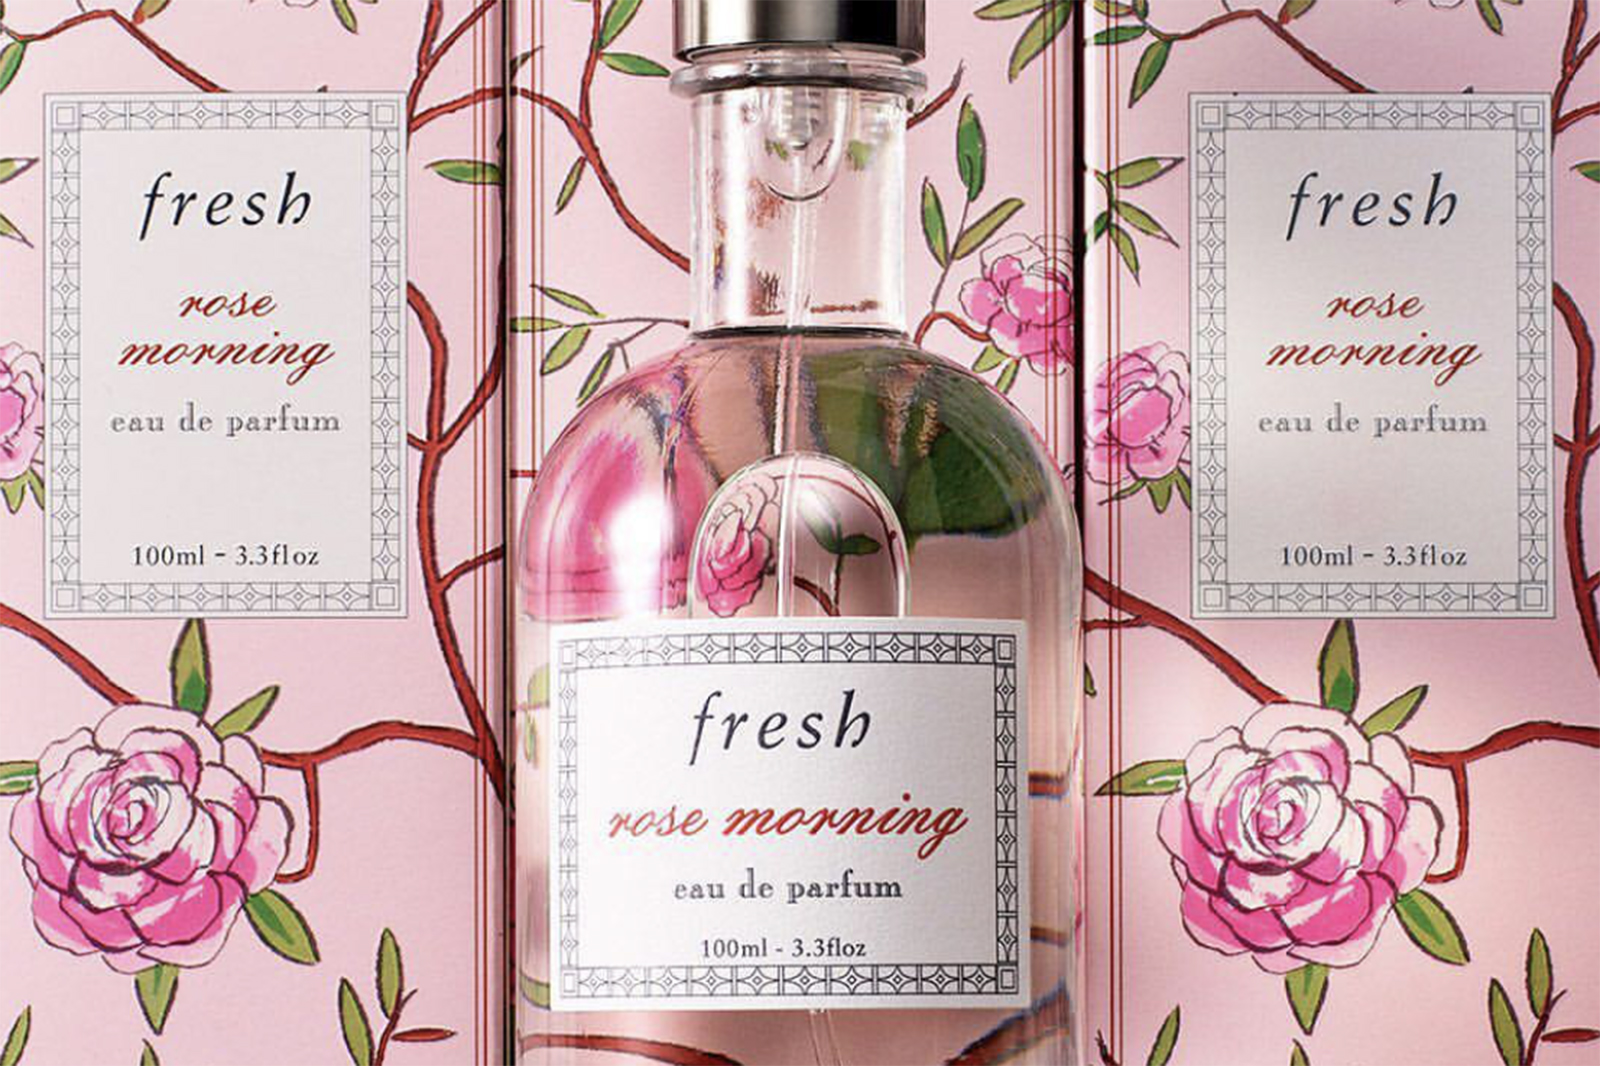 fresh rose morning parfum avis test